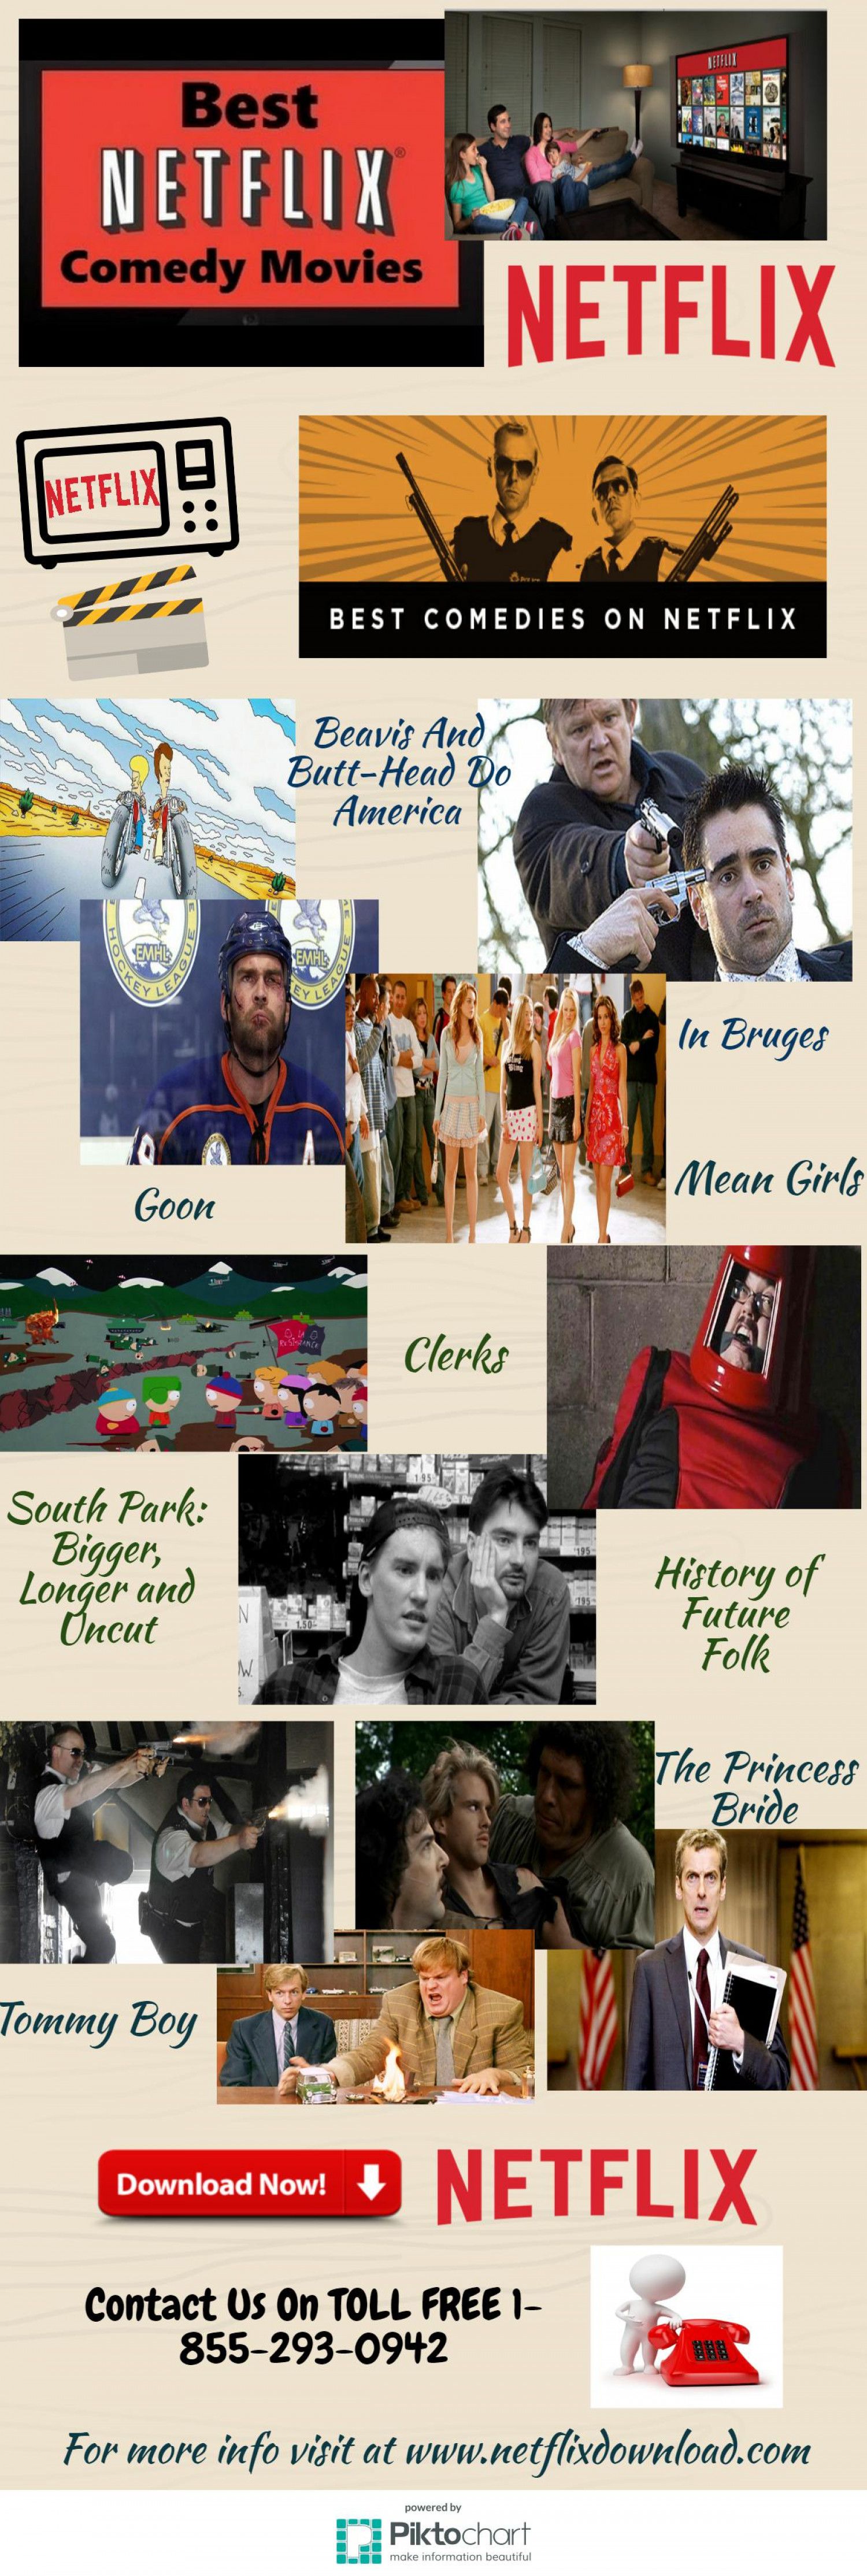 Download Netflix Free app to Stream Best Comedy Movies Infographic